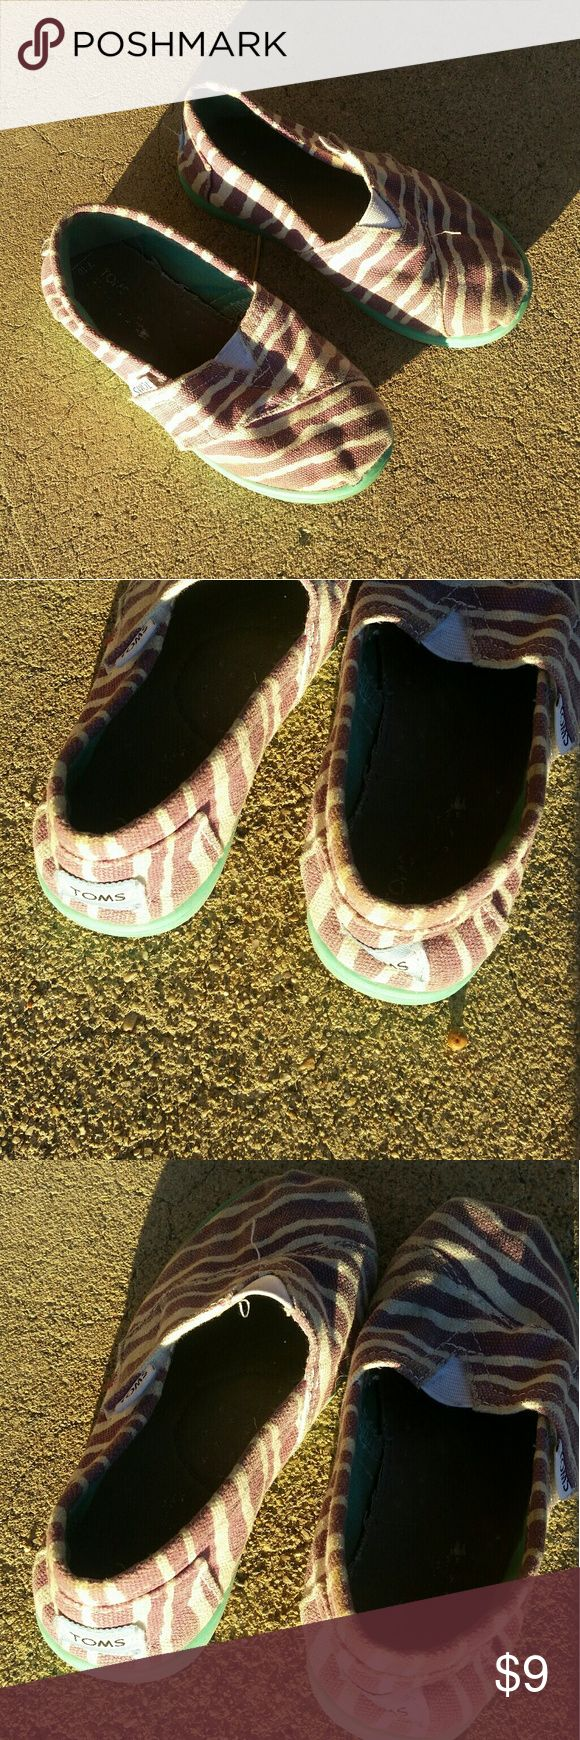 Toms Espadrille Shoes size 10 Toddler Toms Espadrille Shoes size 10 Toddler, purple zebra stripe, gently used Toms Shoes